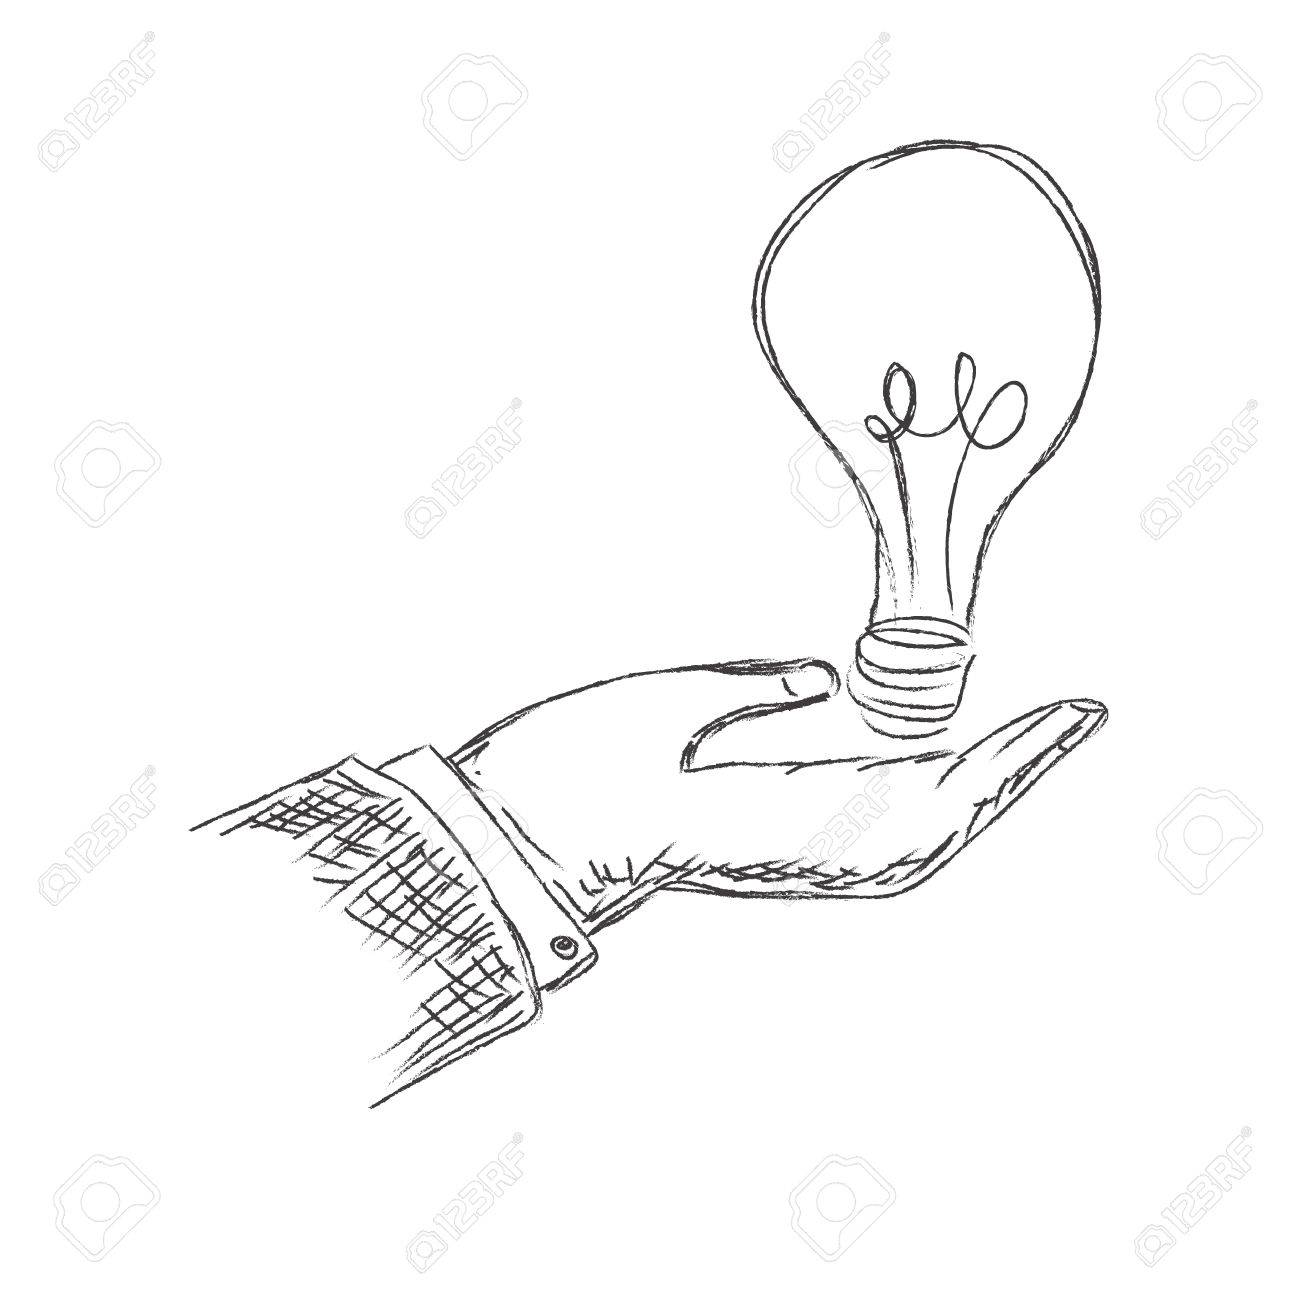 1300x1300 Hand Holding Light Bulb, Sketch, Vector, Illustration Royalty Free